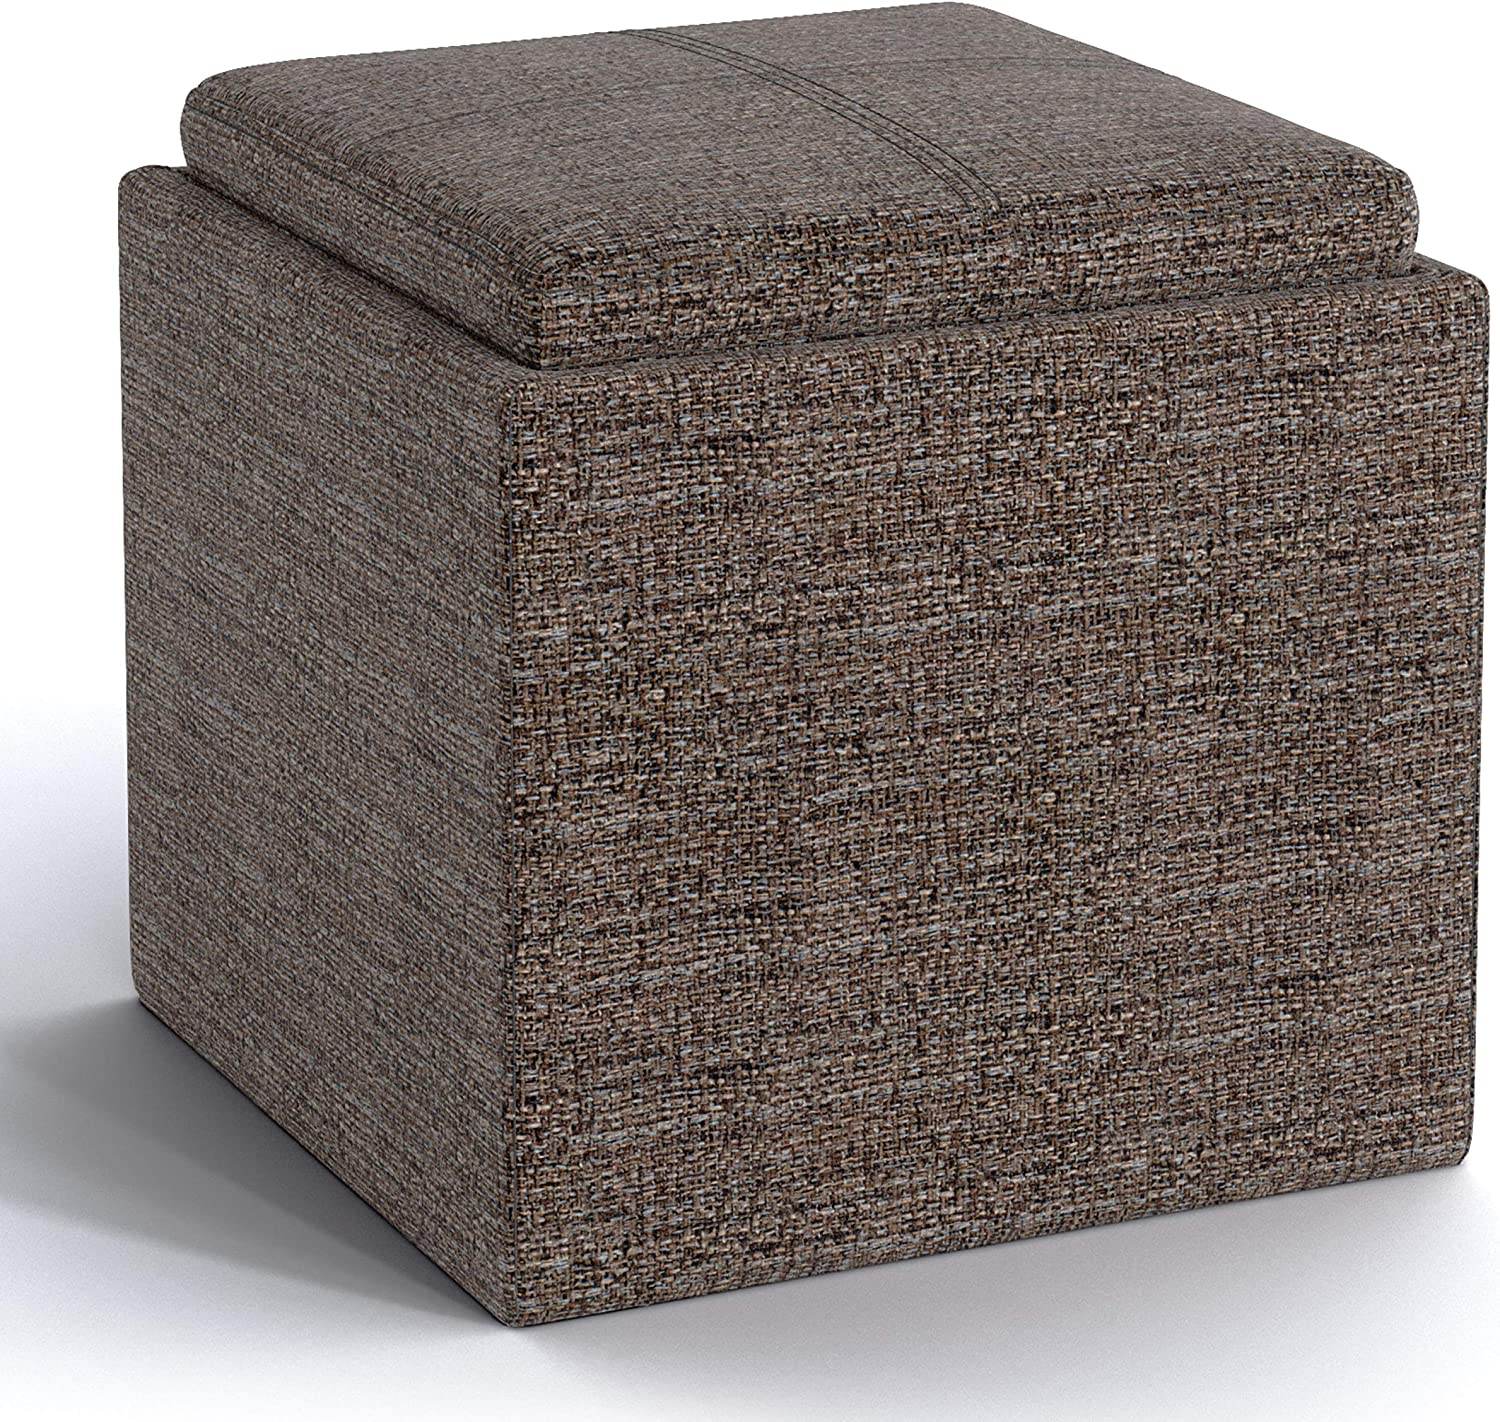 SIMPLIHOME Rockwood 17 inch Wide Square Cube Storage Ottoman with Tray in Mink Brown Tweed Fabric, Footrest Stool, Coffee Table for the Living Room, Bedroom, and Kids Room, Contemporary